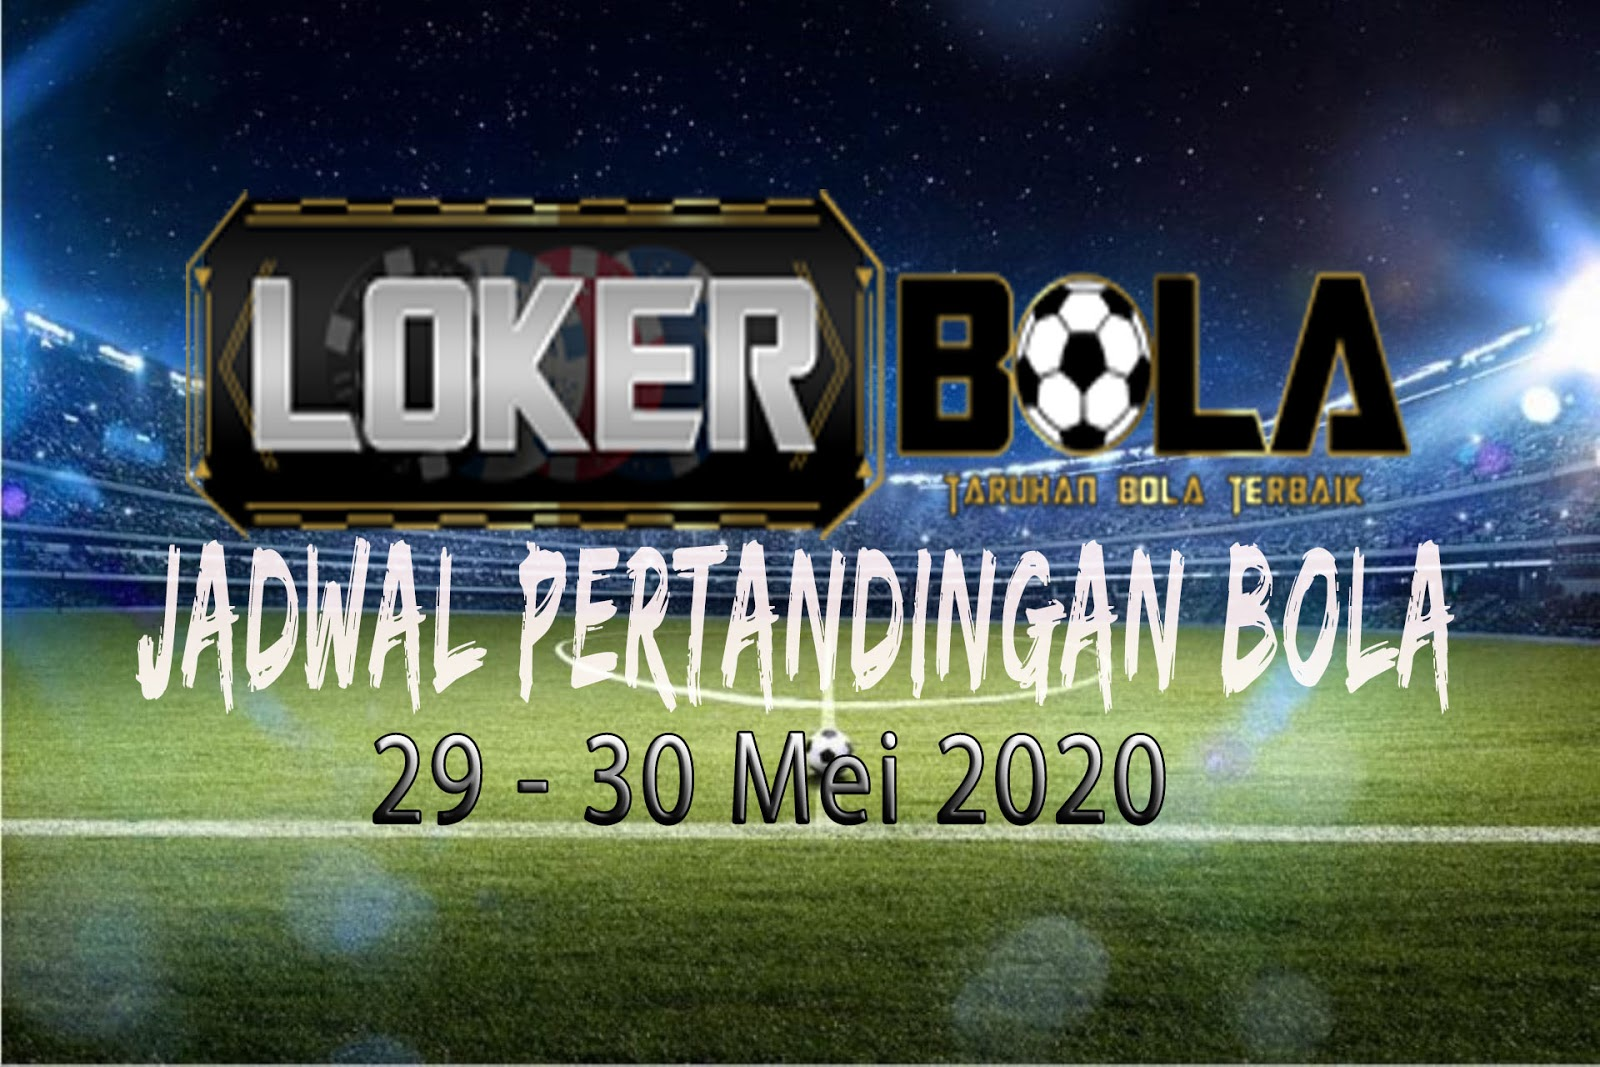 JADWAL PERTANDINGAN BOLA 29 – 30 May 2020